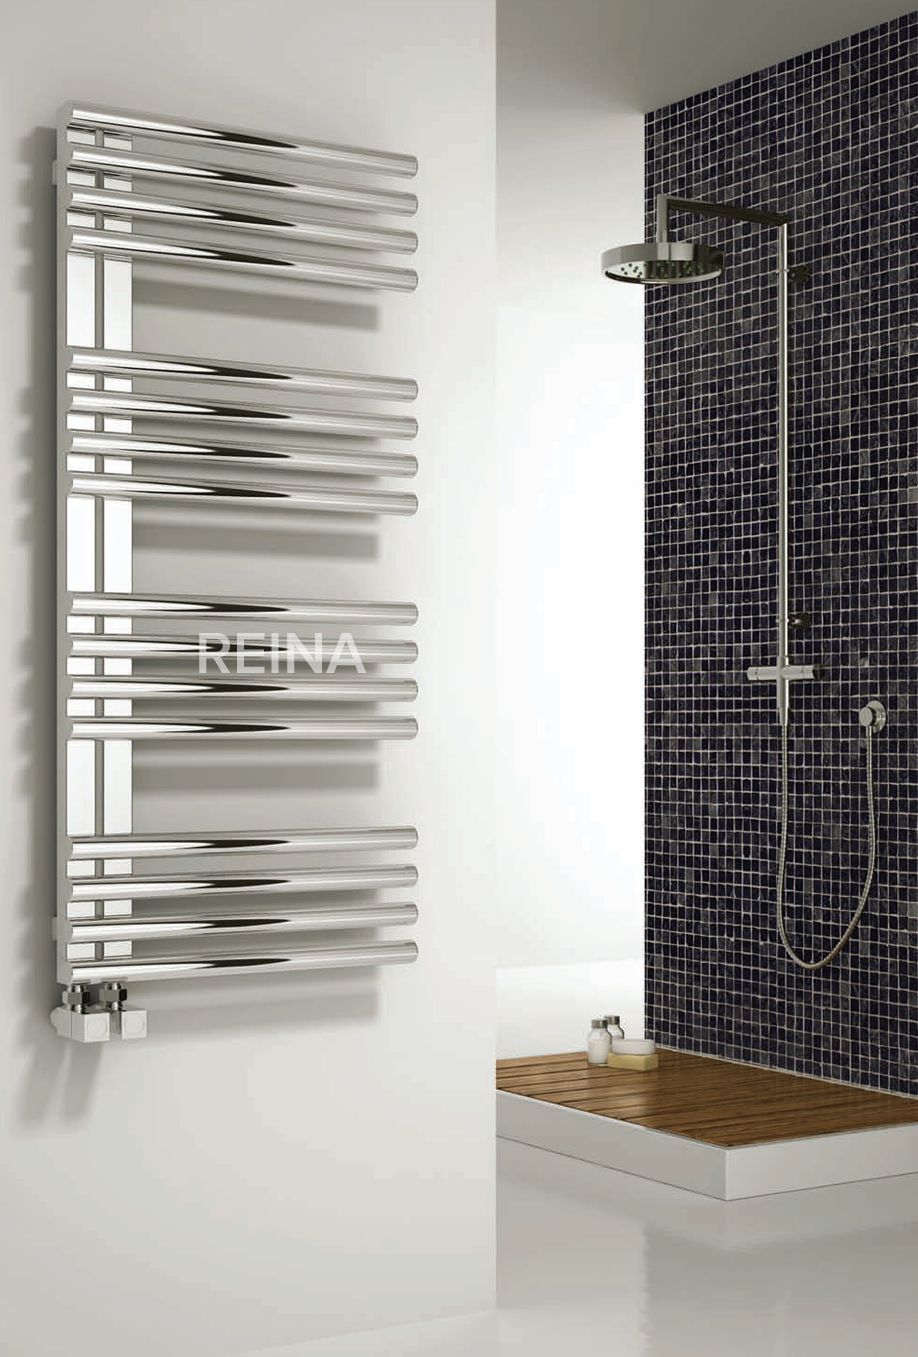 The Reina Adora heated towel rail is